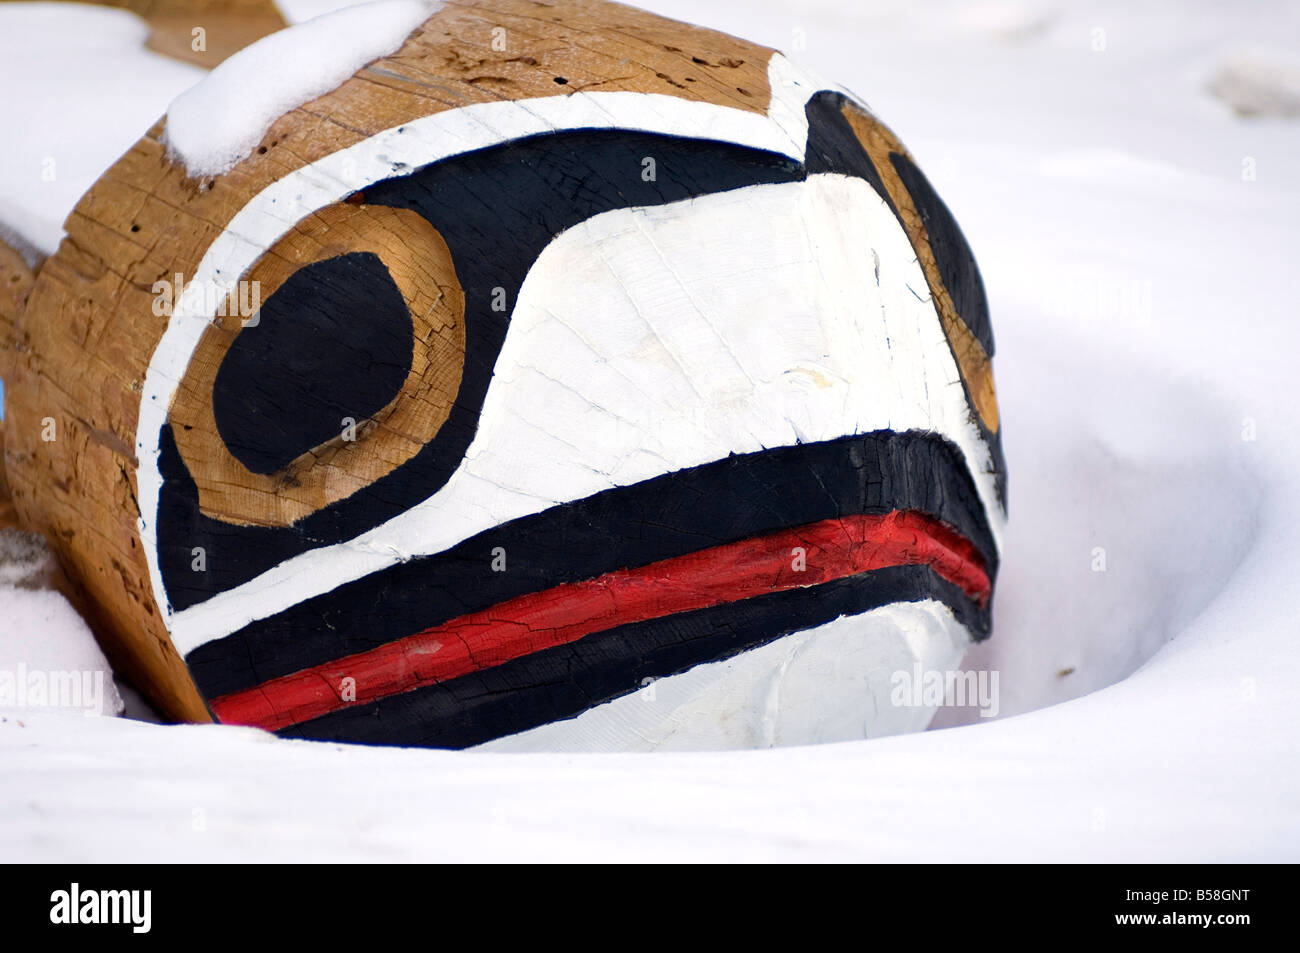 First nation carved bench in snow, Banff, Alberta Canada, North America - Stock Image